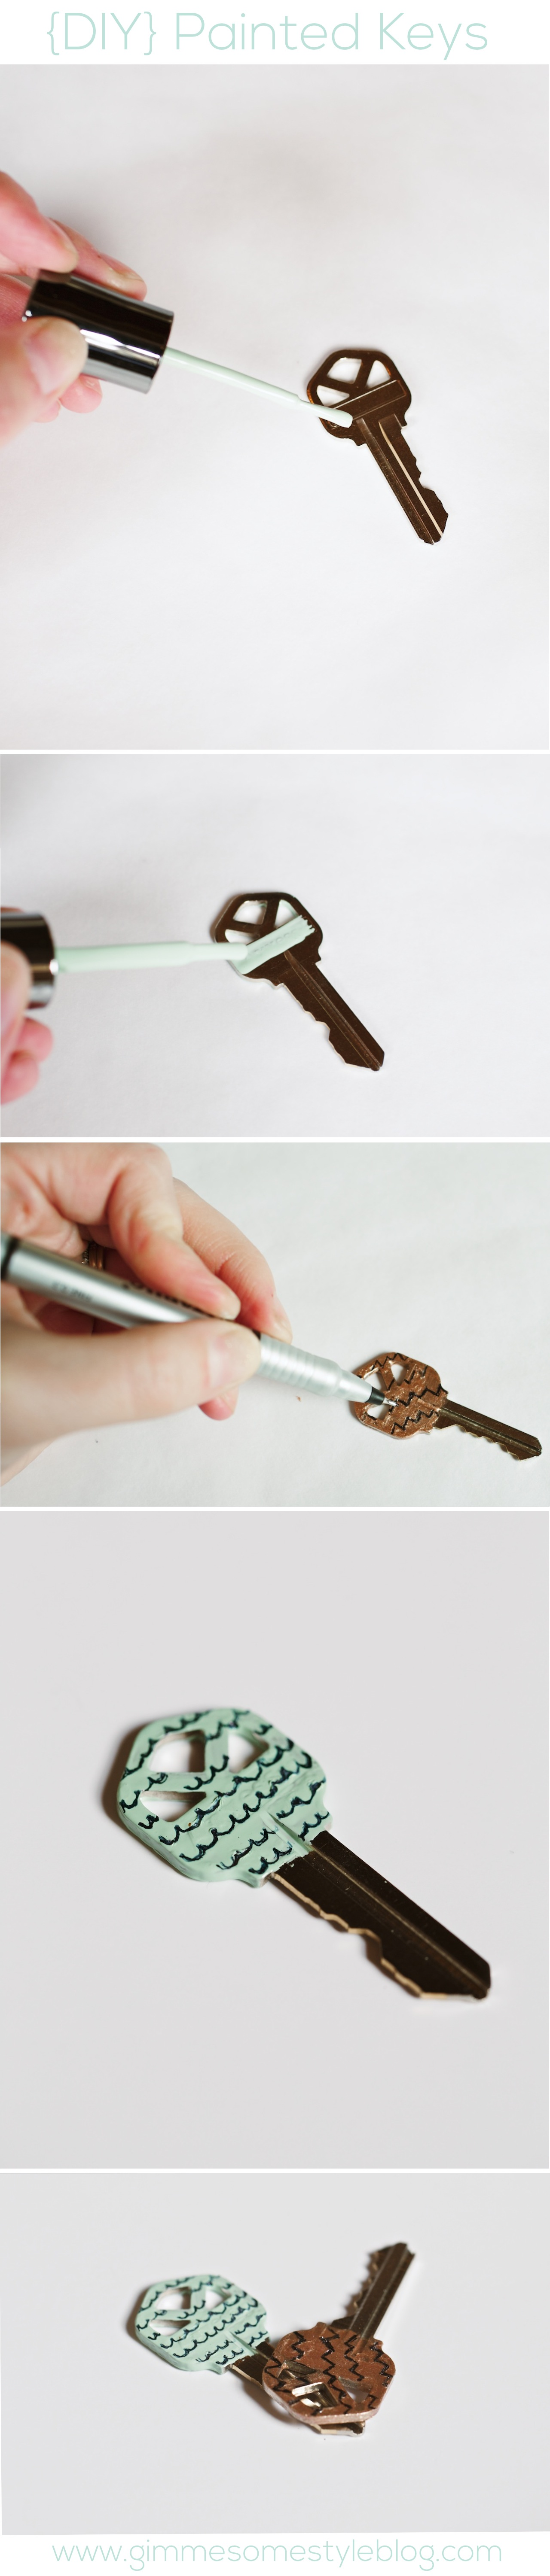 Have trouble telling your keys apart?  Never have trouble again with this simple DIY project! | www.gimmesomestyleblog.com #diy